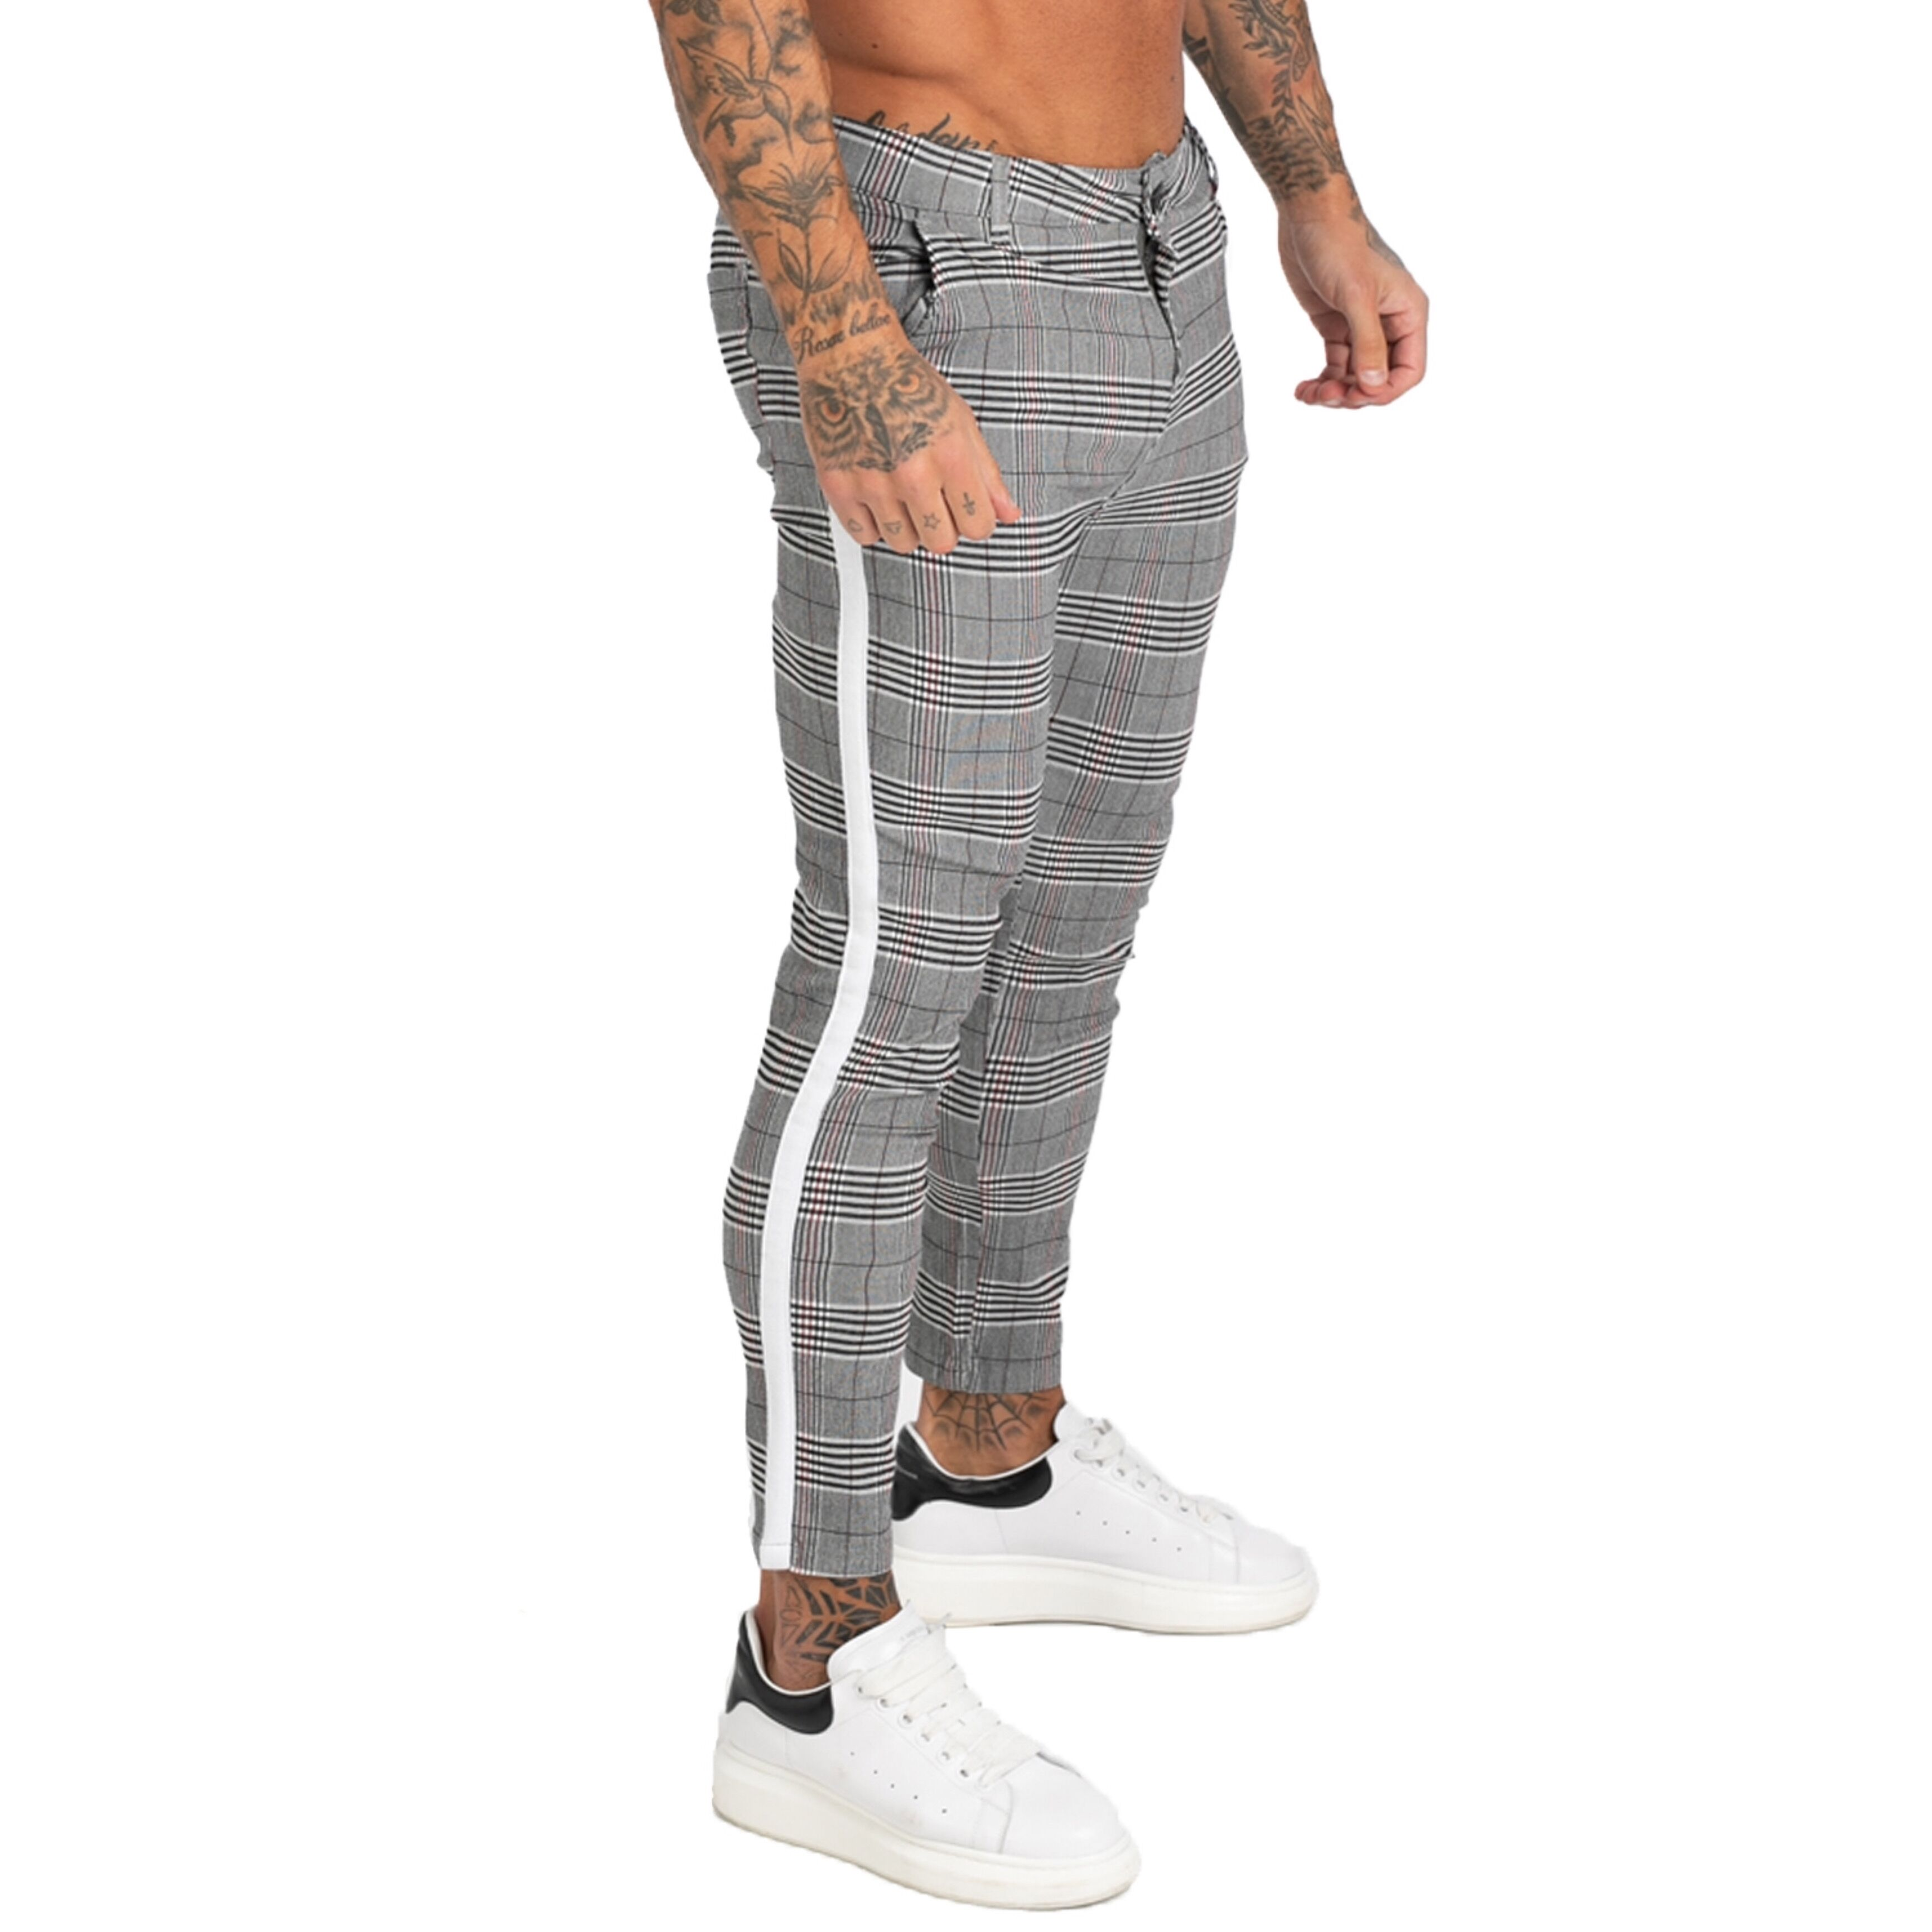 GINGTTO Mens Jeans Brand Chinos Trousers Grey Plaid Skinny Pants For Men Side Stripe Stretchy Best Fitting Athletic Body Zm355